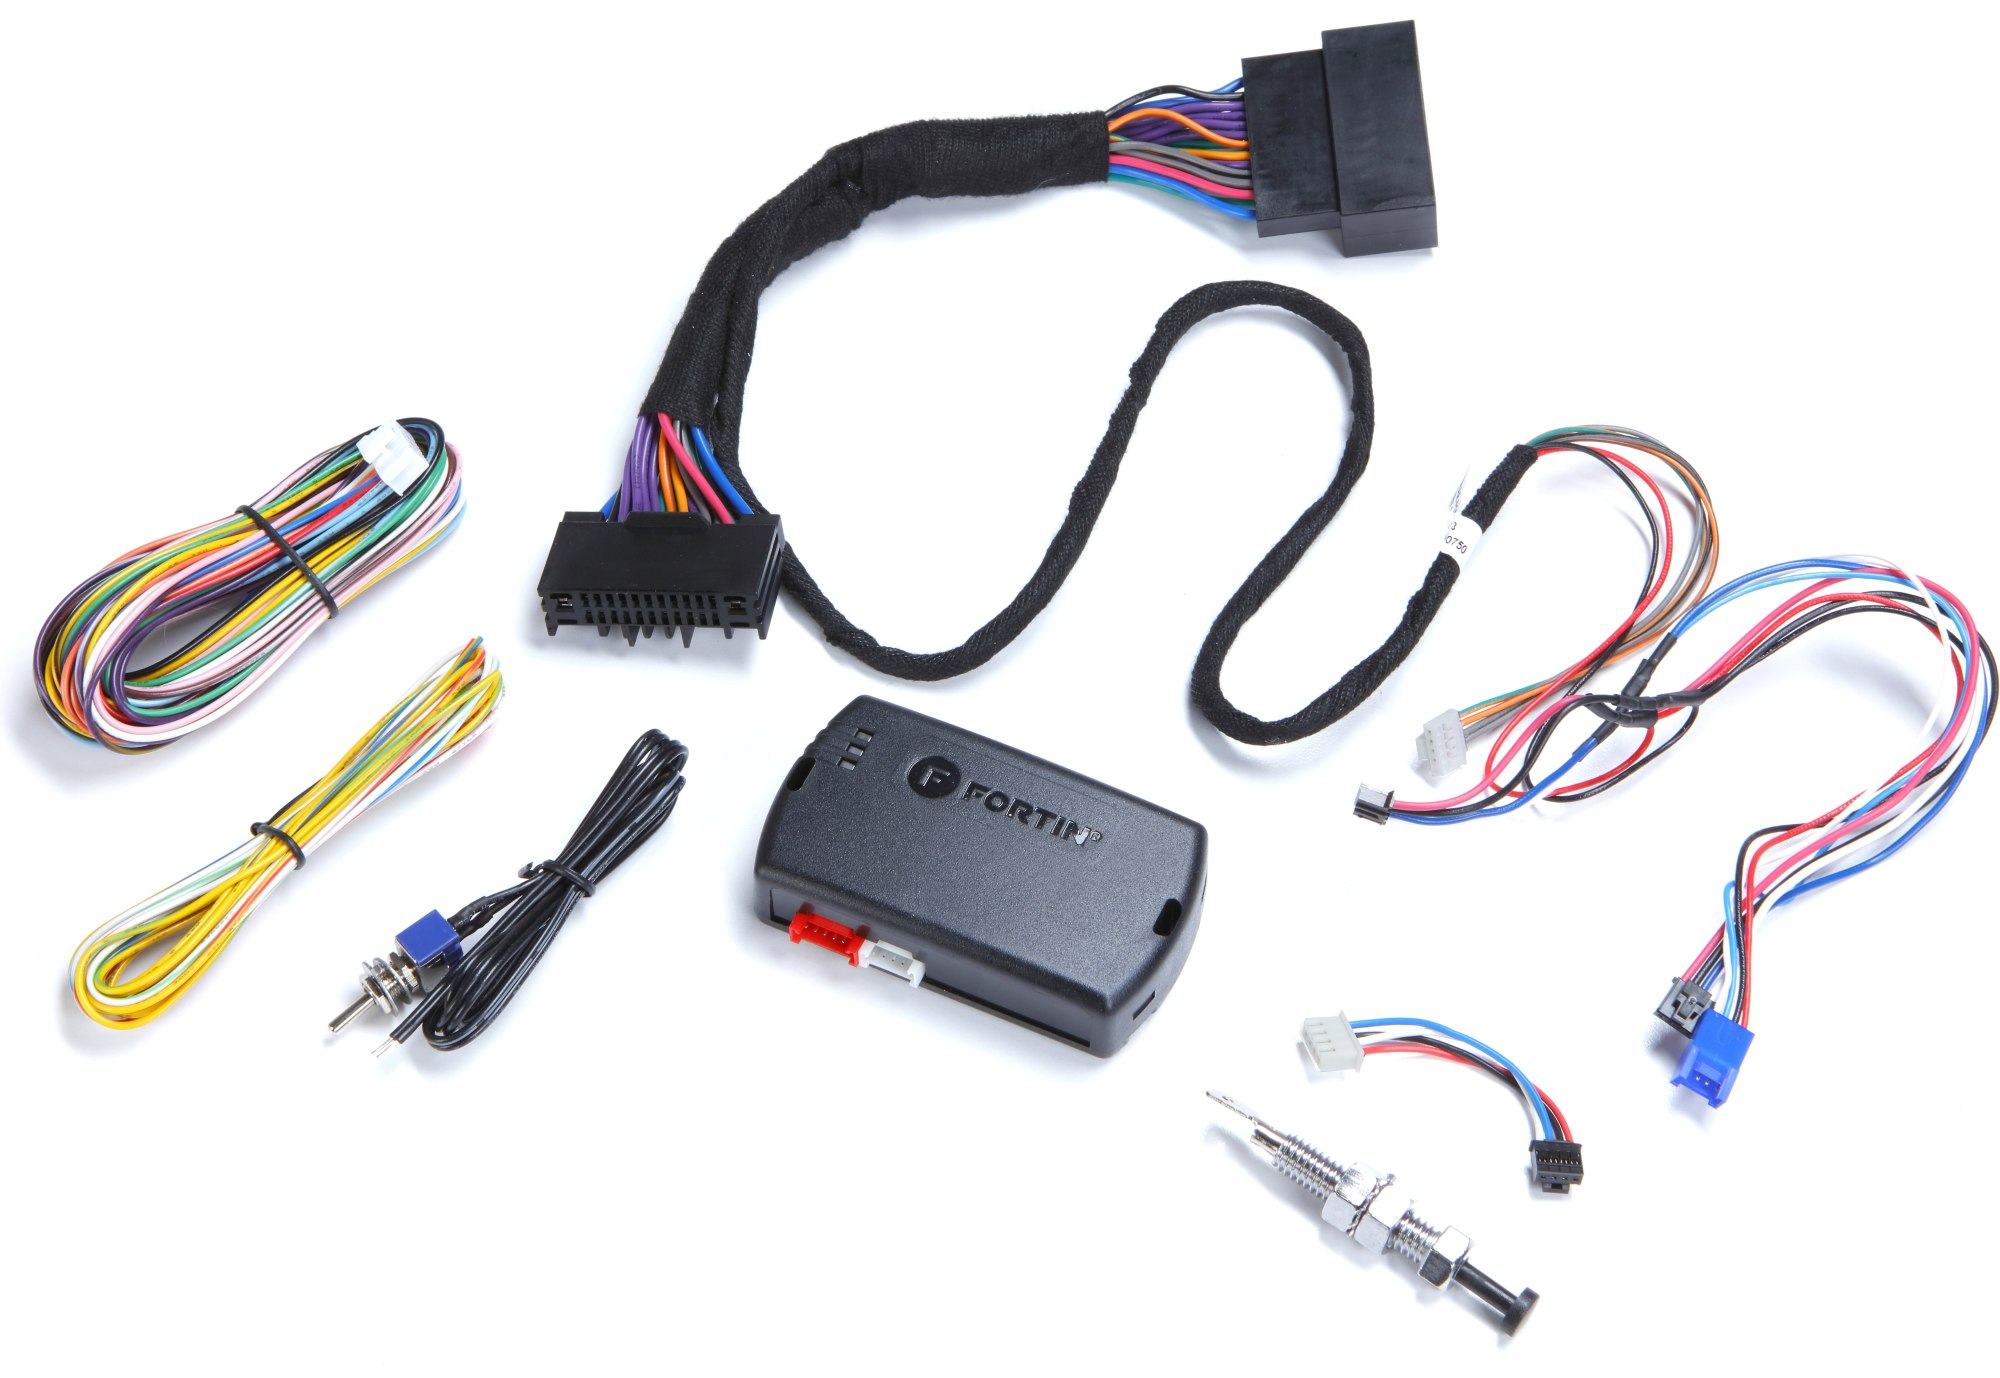 hight resolution of fortin evo fort3 digital remote start system for select 2013 up ford built vehicles at crutchfield